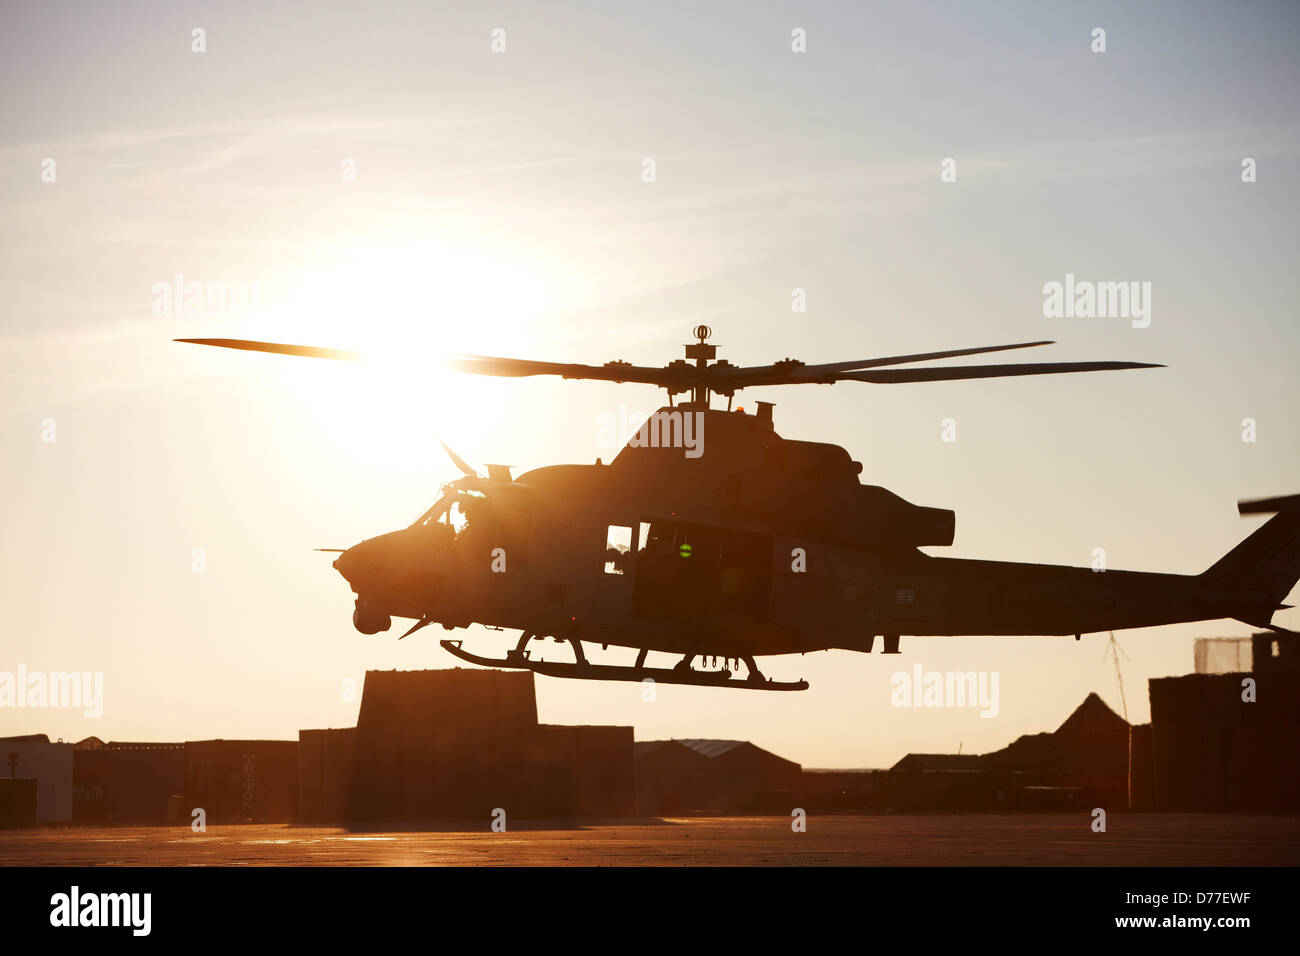 United States Marine Corps UH-1Y Venom helicopter as it embarks on combat operation in Helmand Province Afghanistan - Stock Image